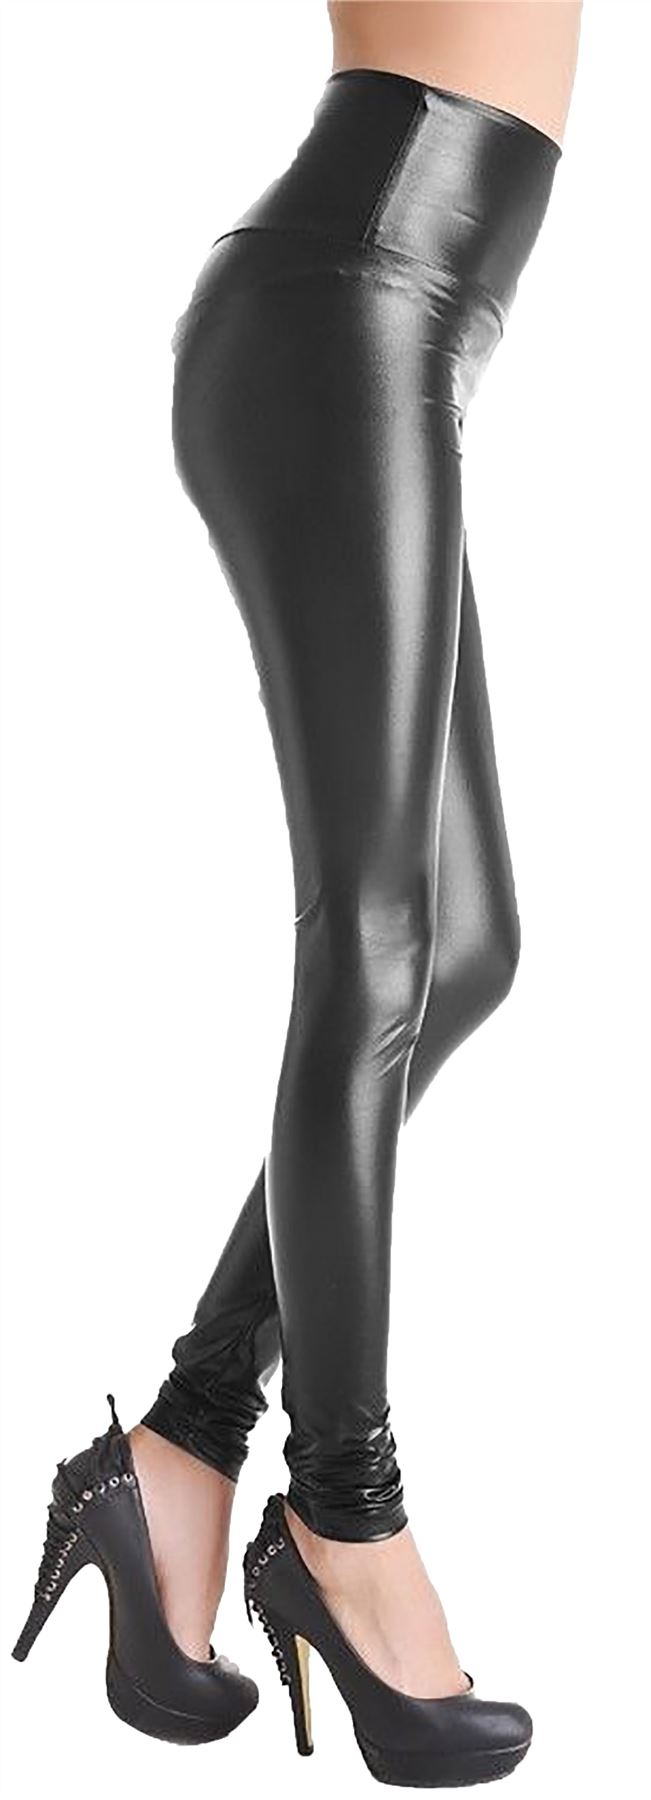 Ladies High Waist Wet Look Faux Leather Leggings Black Shiny Stretchy Tight Pant